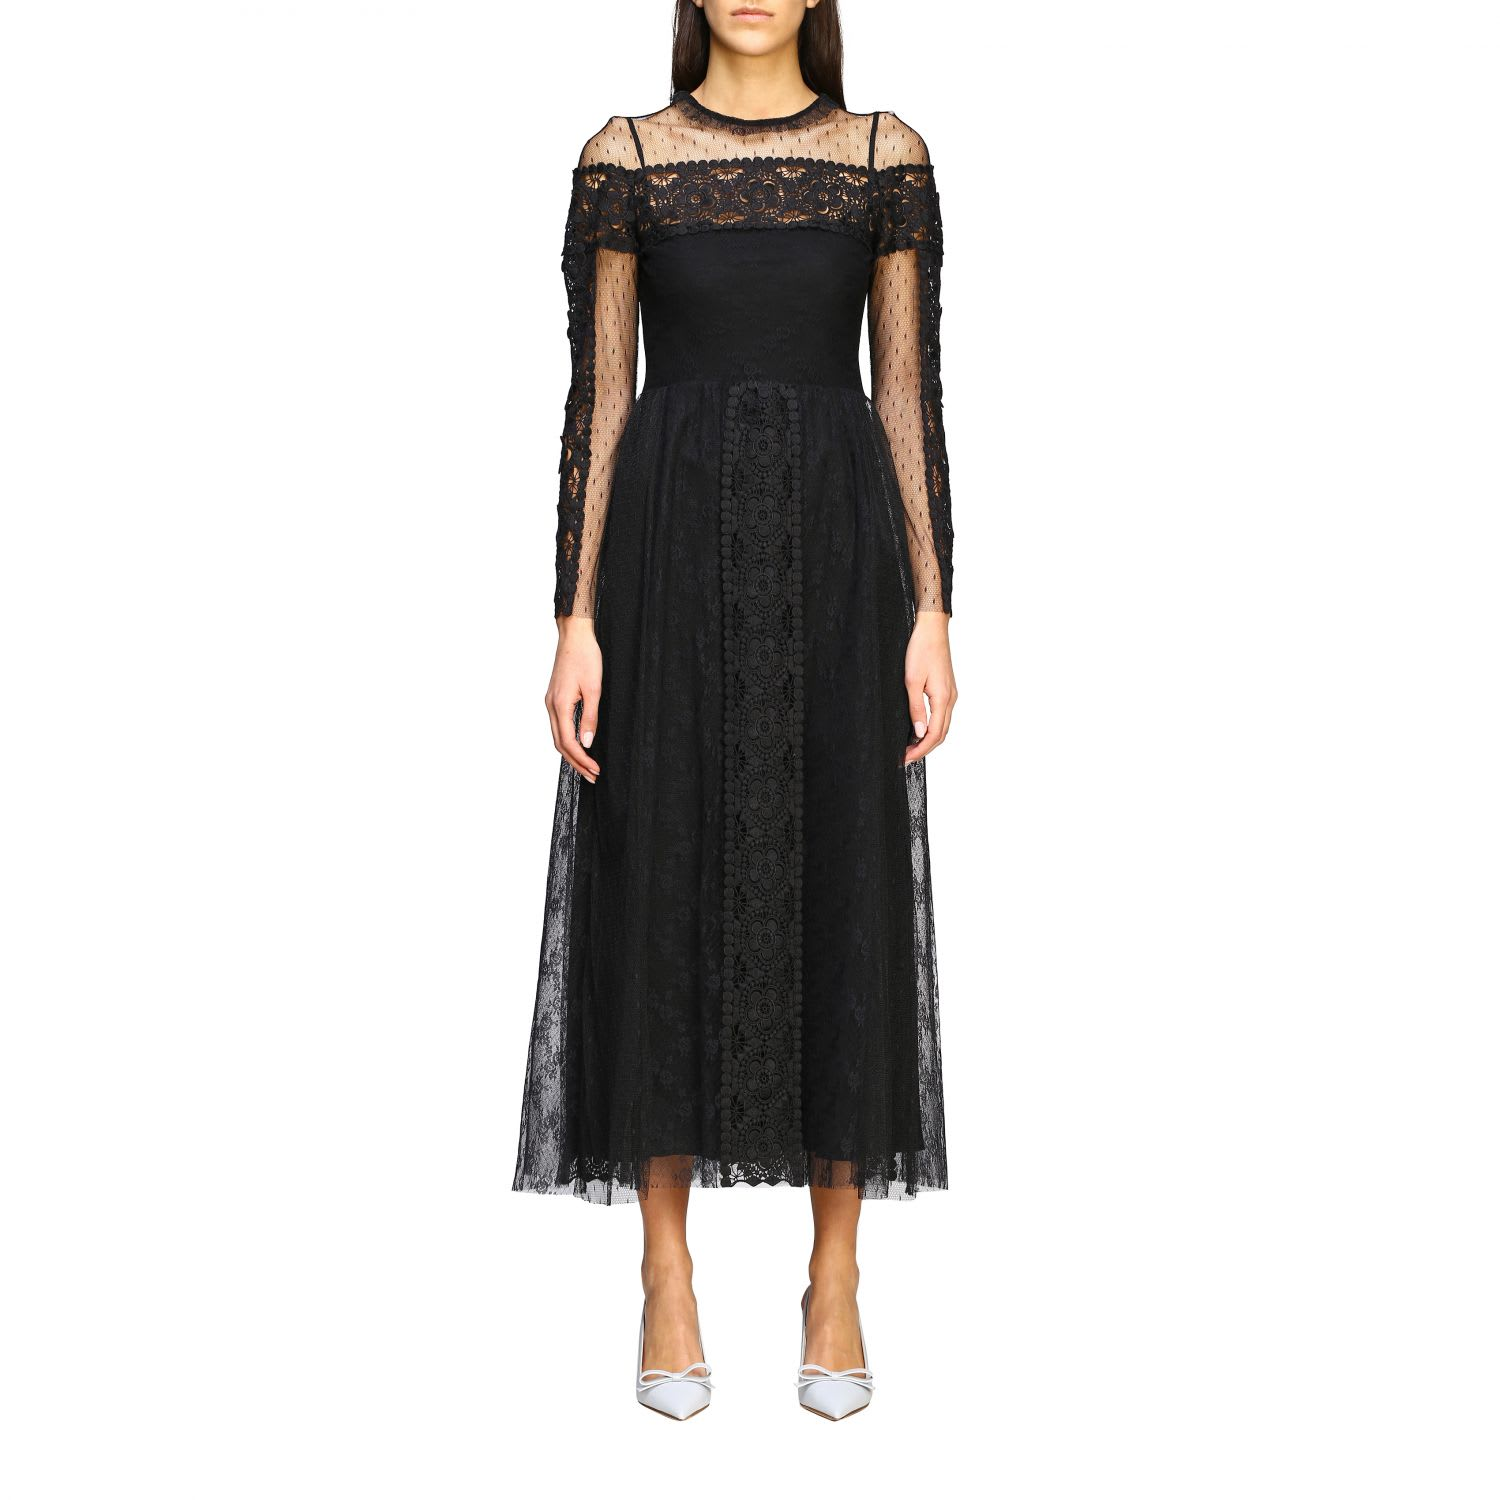 Buy Red Valentino Dress Red Valentino Maxi Dress In Point Desprit Tulle And Macramé online, shop RED Valentino with free shipping